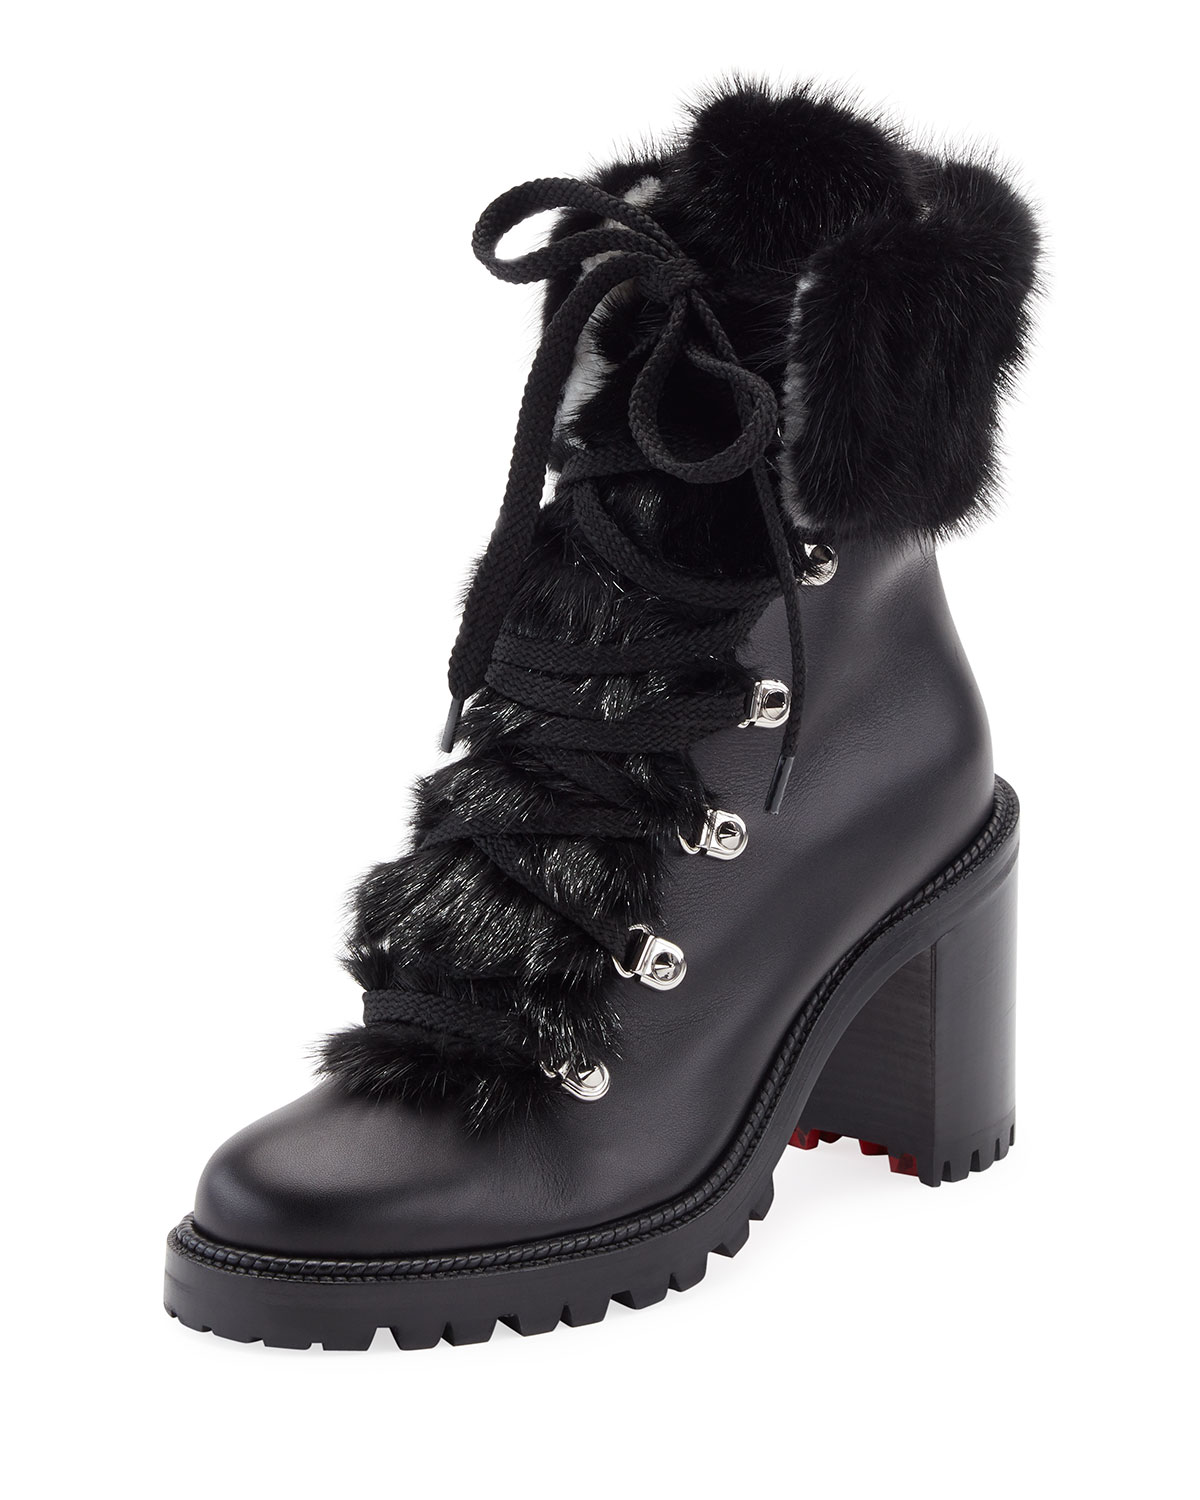 5cfb906b55ad Christian Louboutin Fanny Leather Fur-Trim Red Sole Combat Boot ...